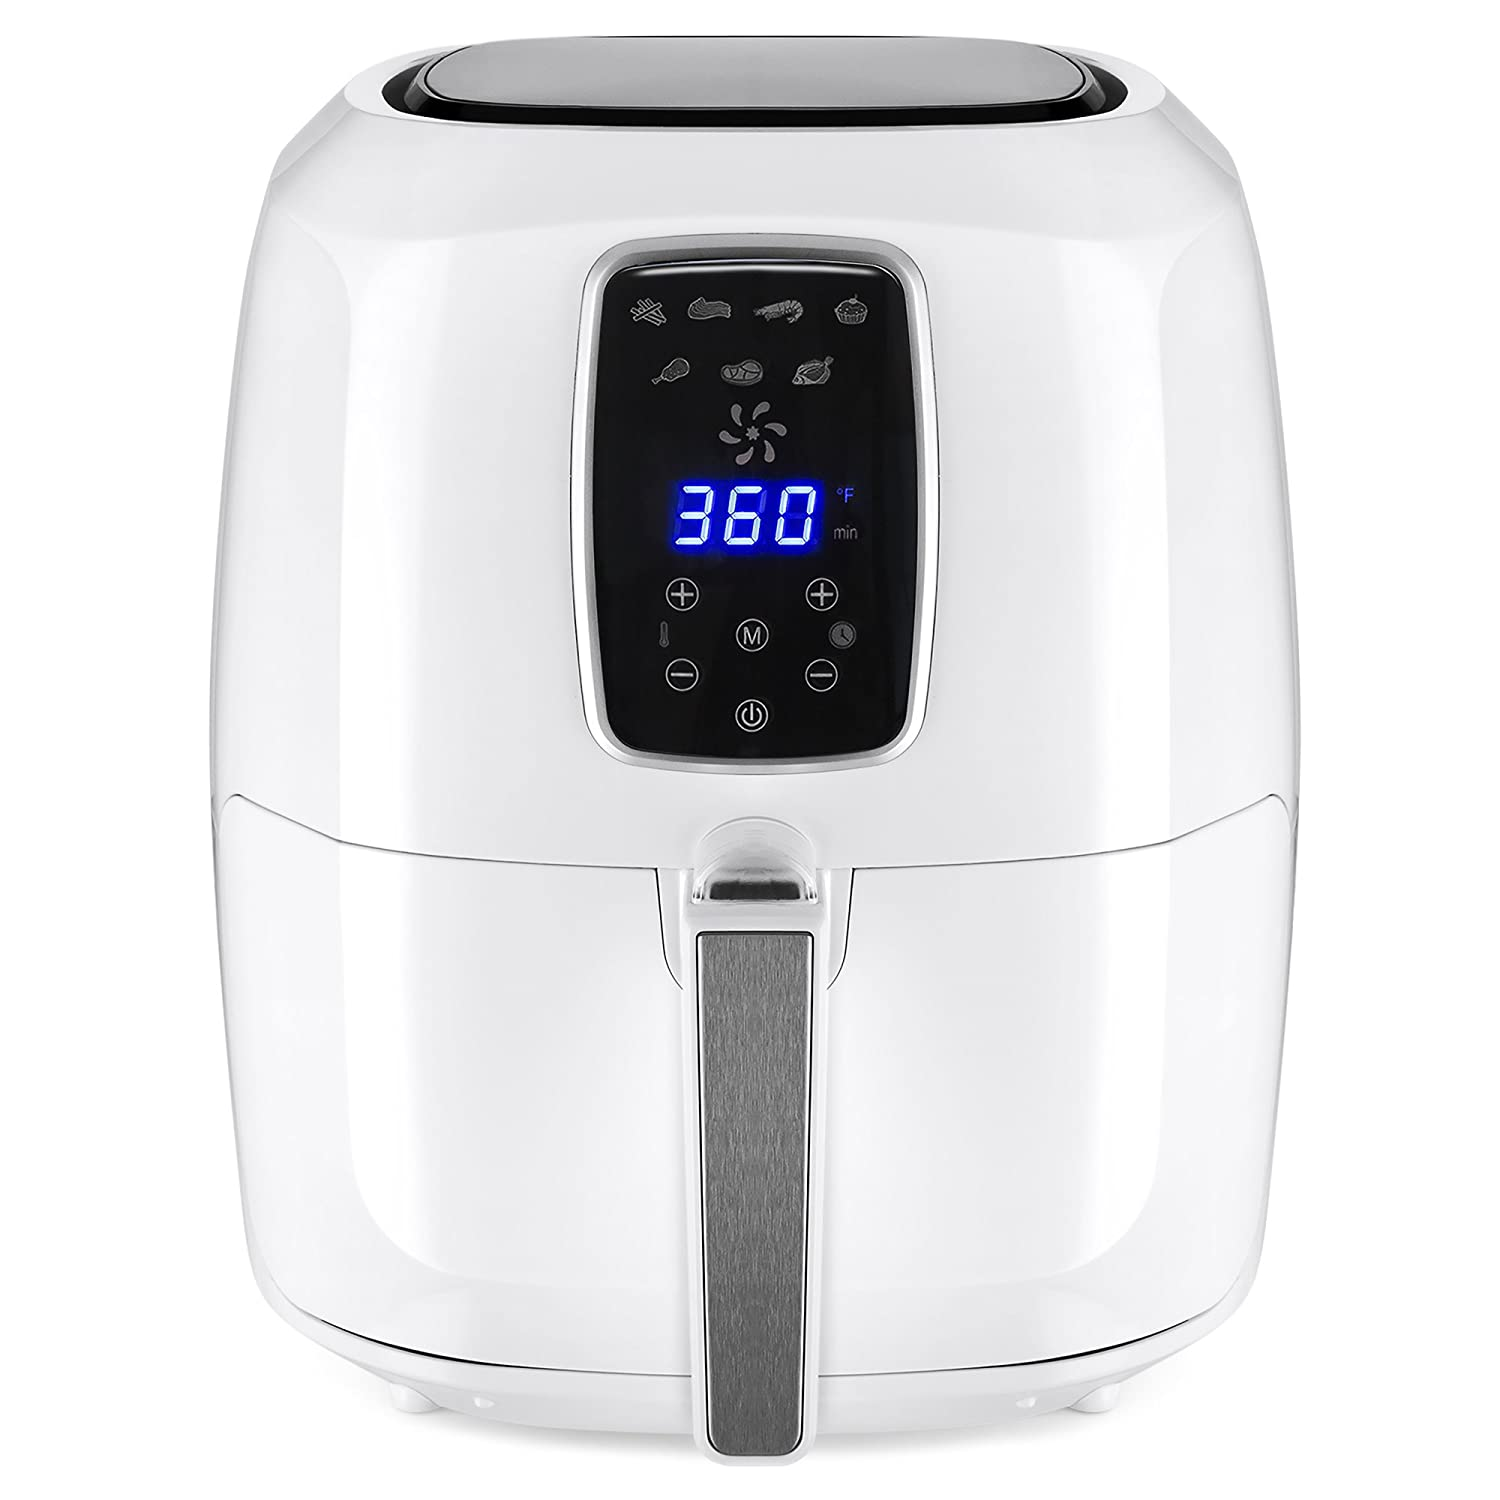 Best Choice Products 5.5qt 7-in-1 Electric Digital Family Sized Air Fryer Kitchen Appliance w/LCD Screen, Non-Stick Coating, Temp Control, Timer, Removable Fryer Basket - White